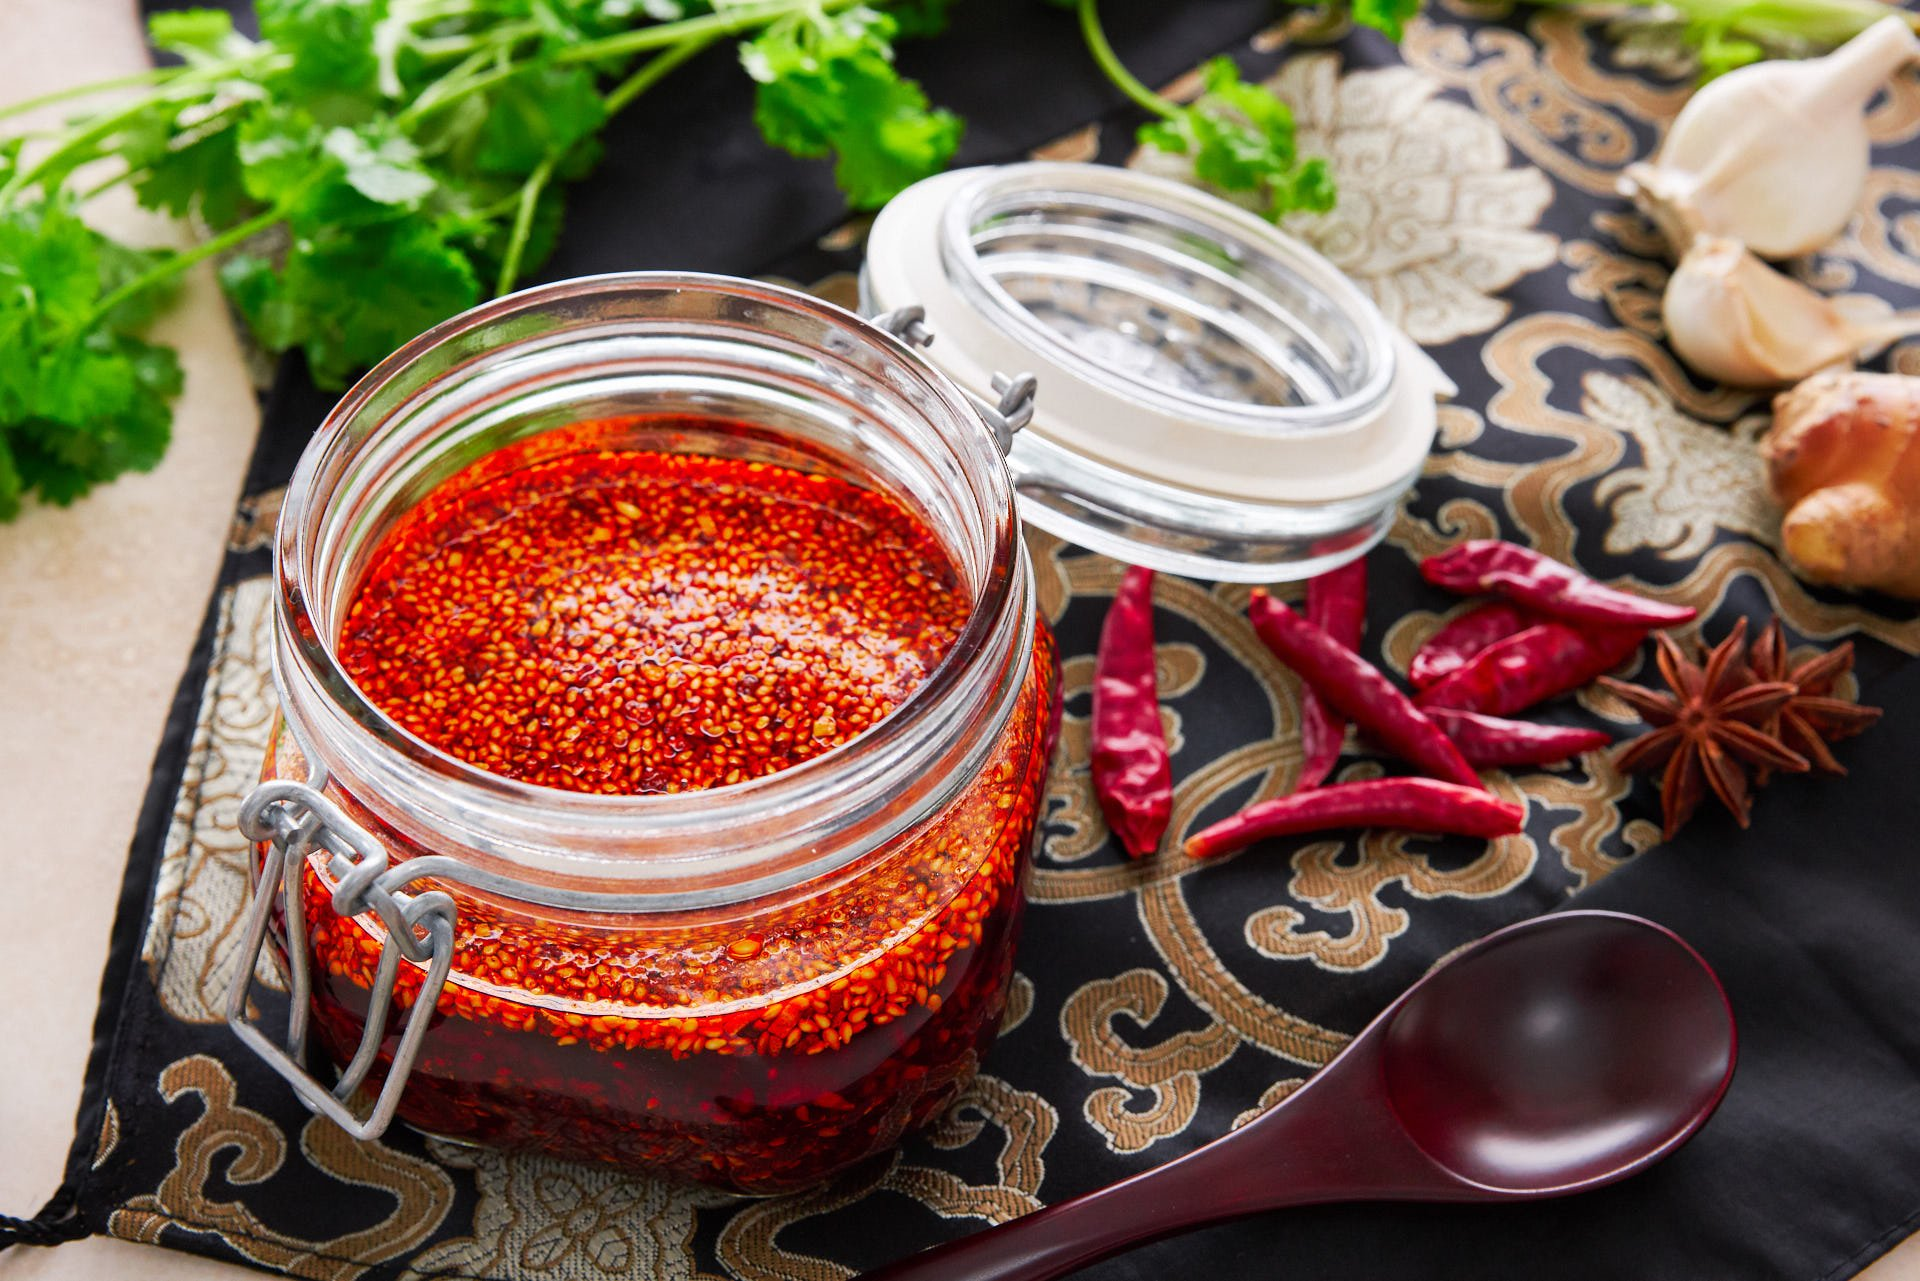 Change up your hot sauce routine with this Sichuan chili oil. Loaded with crisp garlic, sesame seeds and chili flakes it comes together in just minutes from a handful of ingredients.